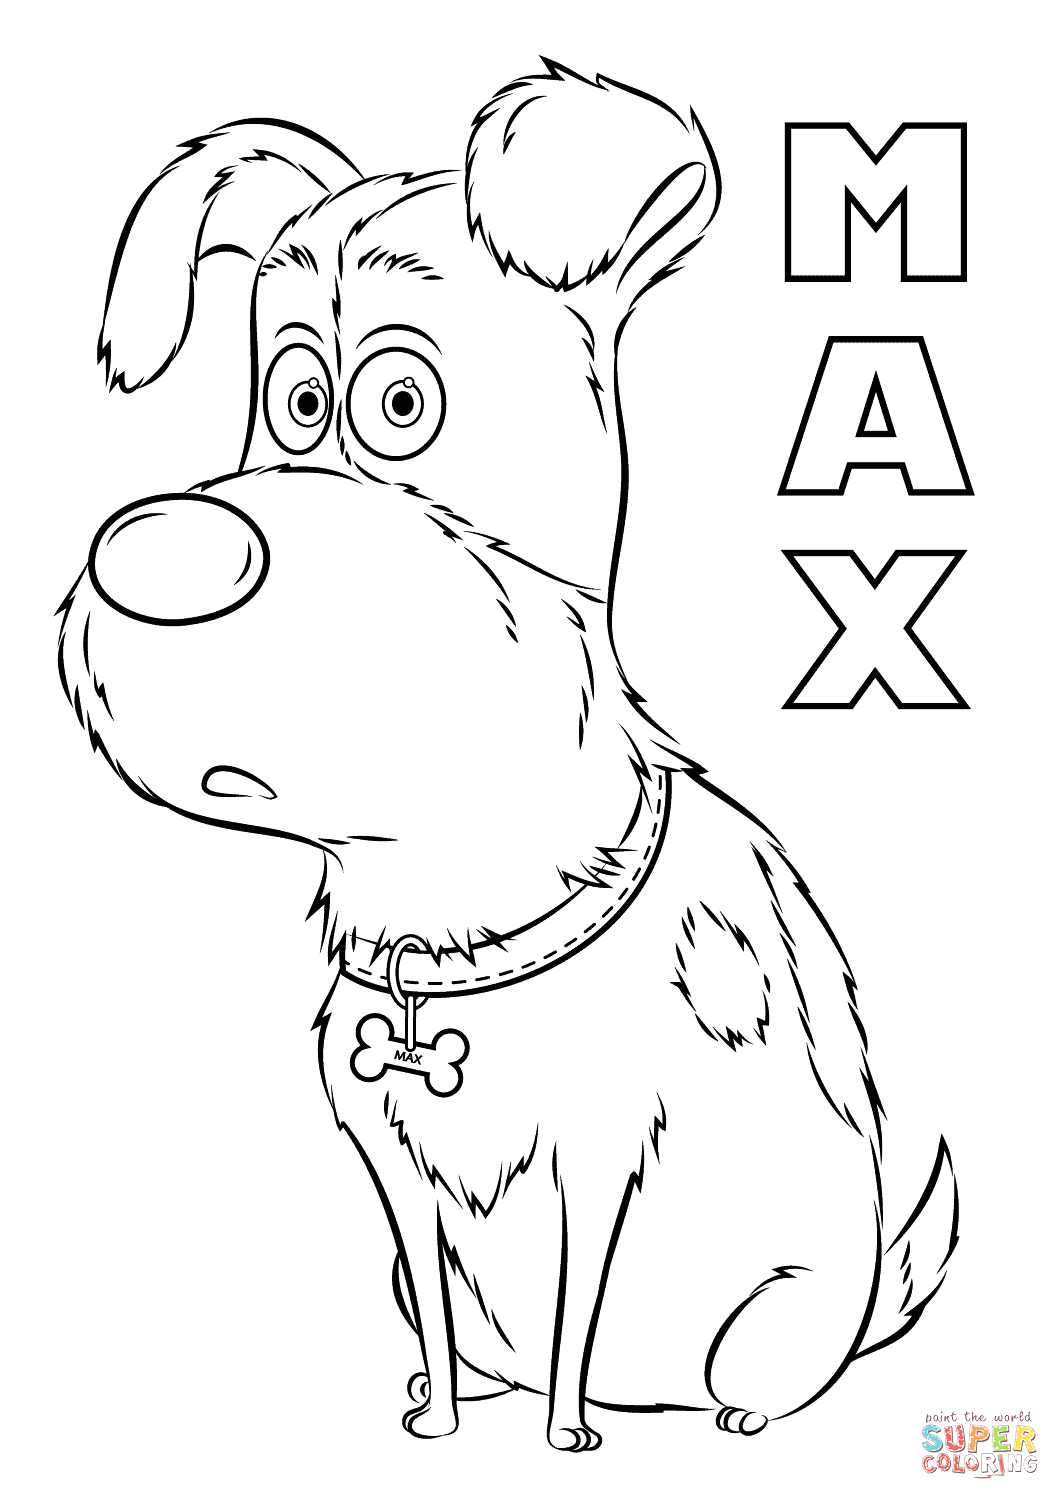 Secret Life Of Pets Coloring Pages to Print Max From the Secret Life Of Pets Coloring Page